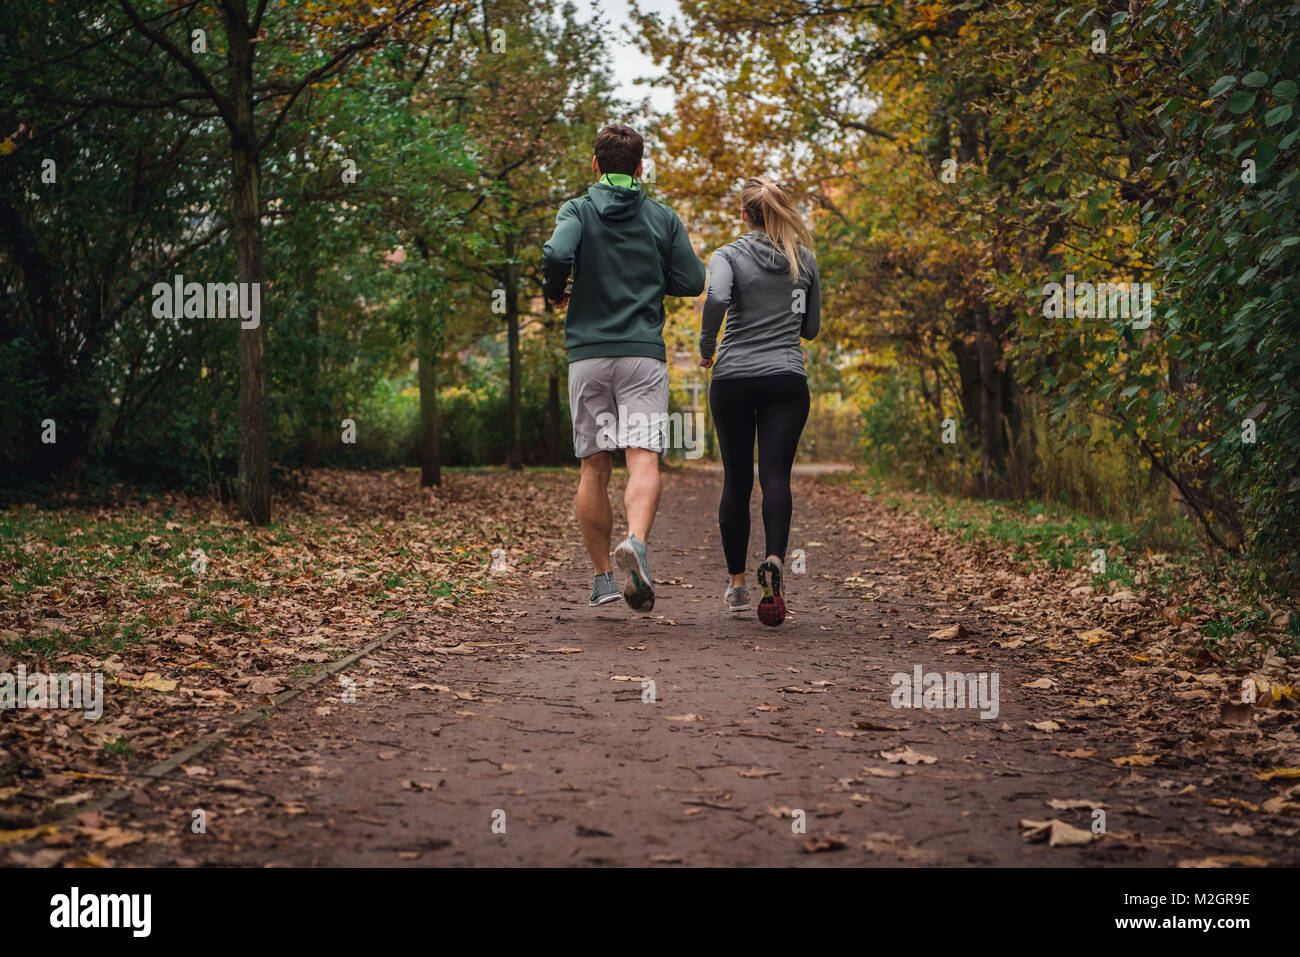 Caucasian man and woman running through the park in the Autumn Fall season down an empty trail. - Stock Image